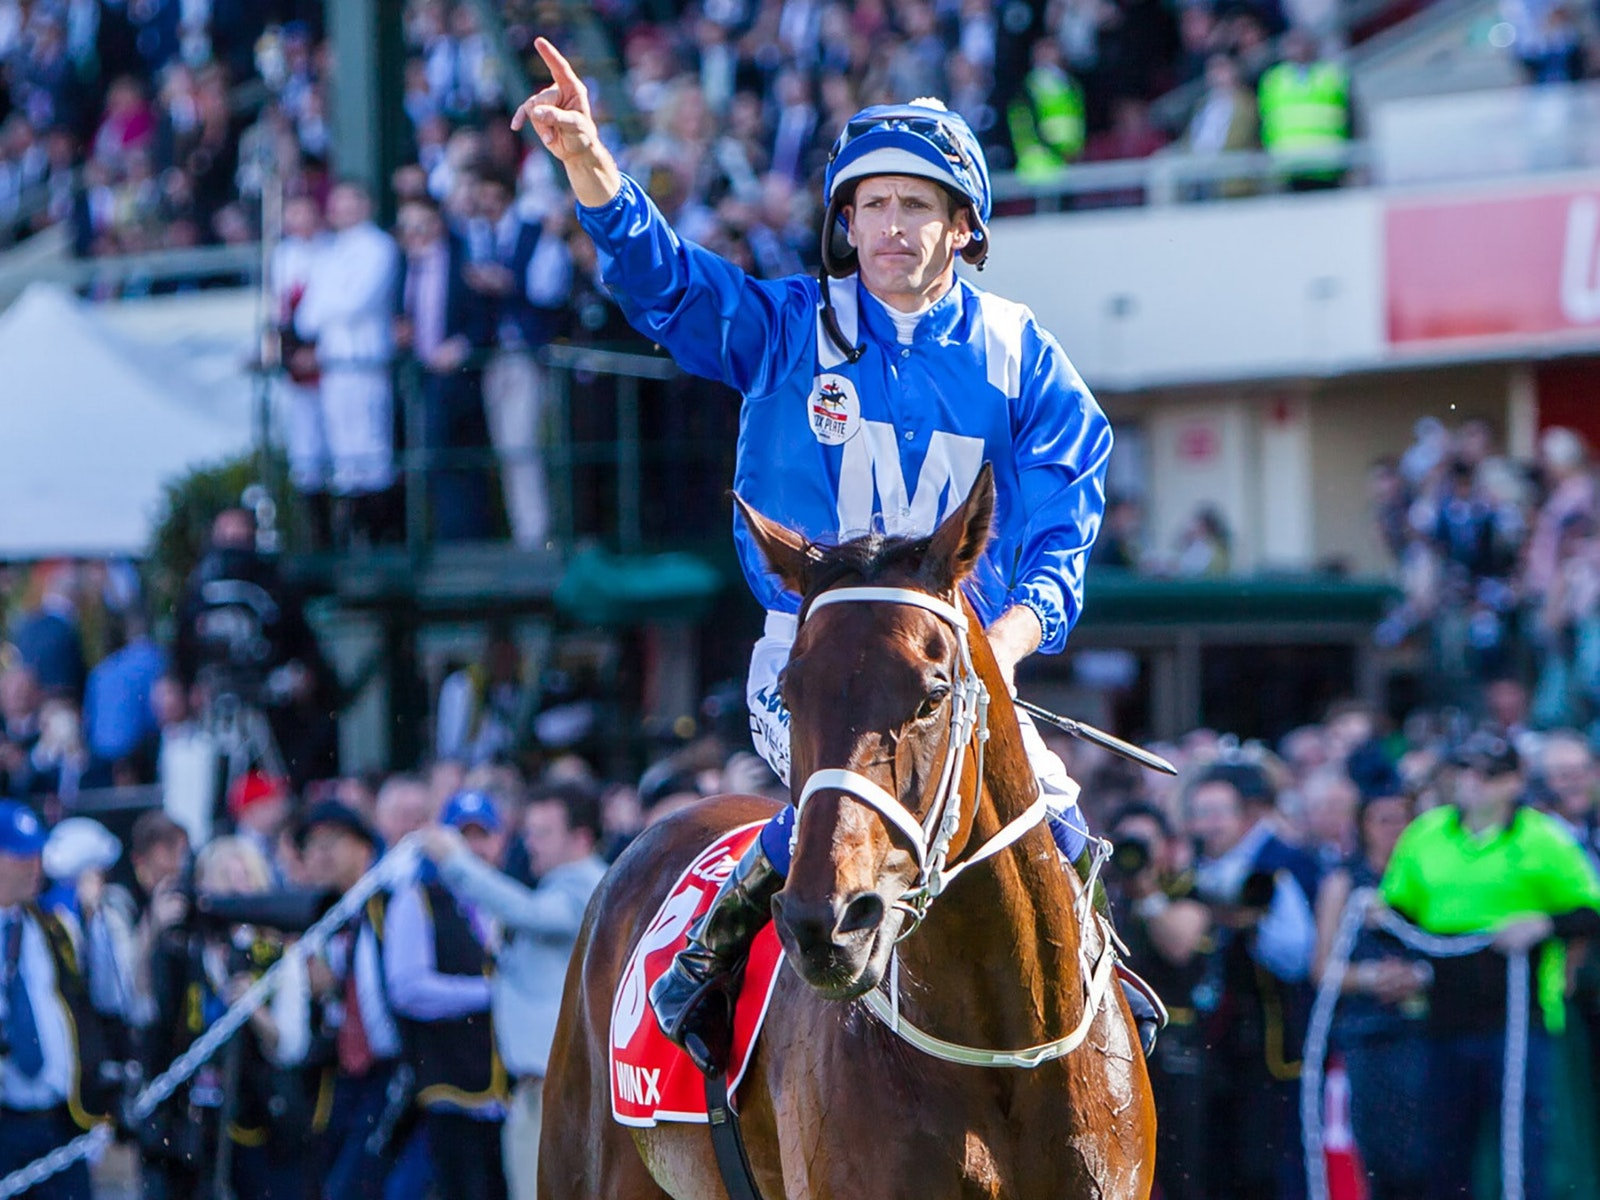 Winx - Winner of the 2017 Ladbrokes Cox Plate